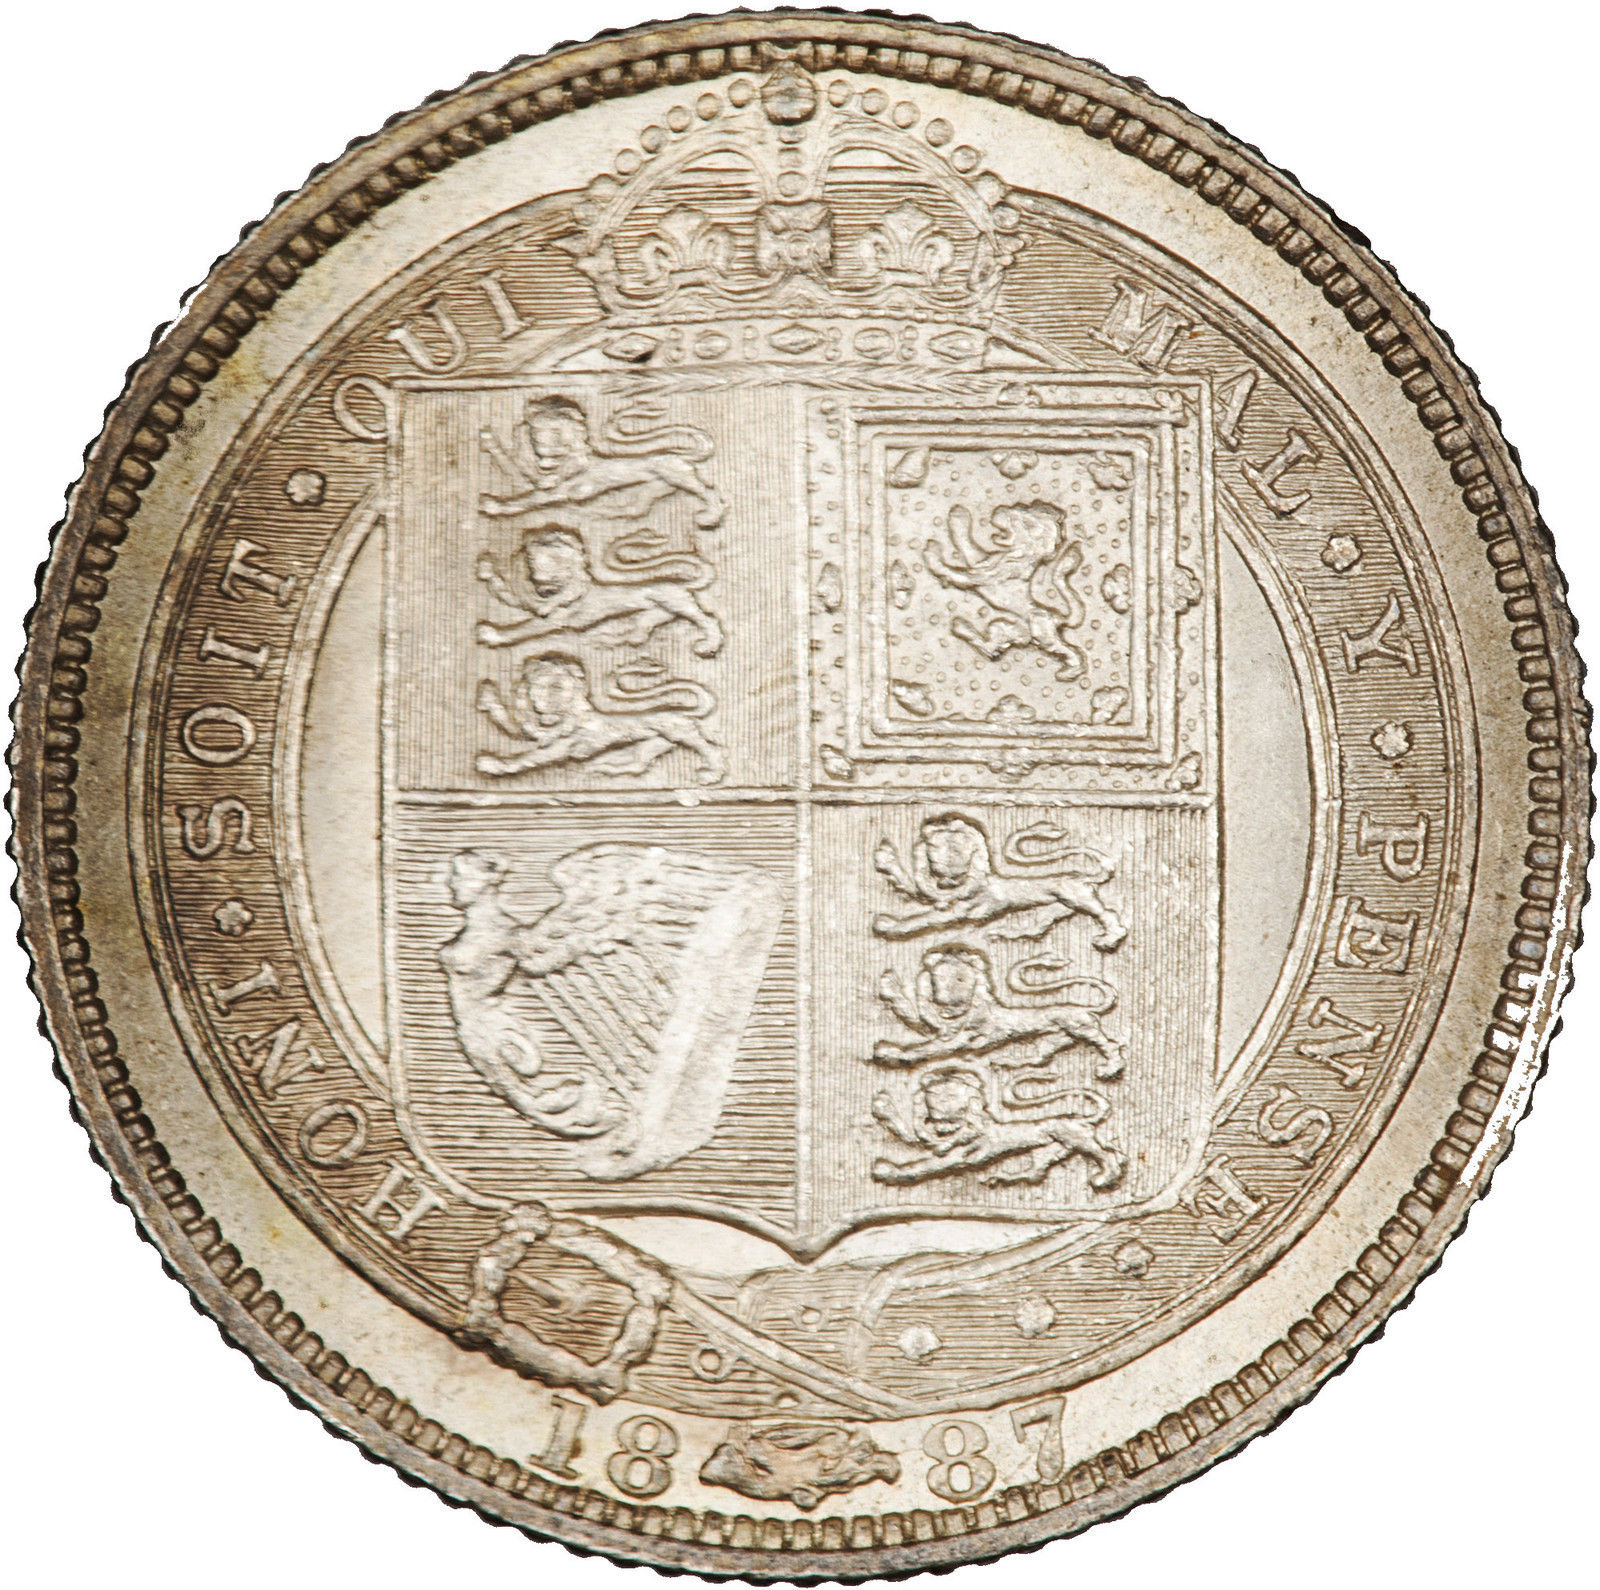 Sixpence: Photo Coin - Sixpence, Queen Victoria, Great Britain, 1887